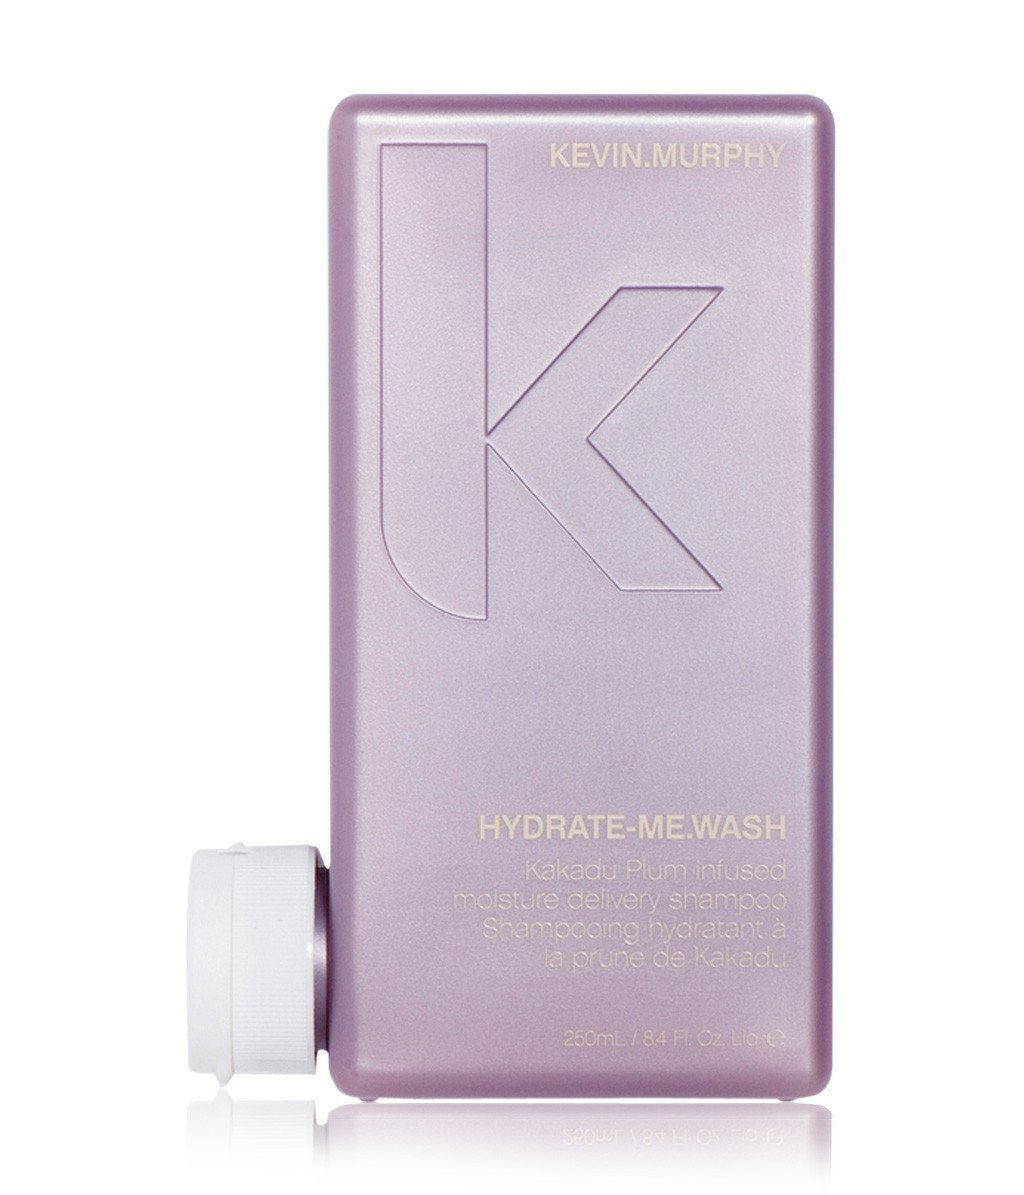 Kevin Murphy Hydrate Me Wash Kakadu Plum Infused Moisture Delivery Shampoo for Coloured Hair 8.4 oz by Kevin Murphy